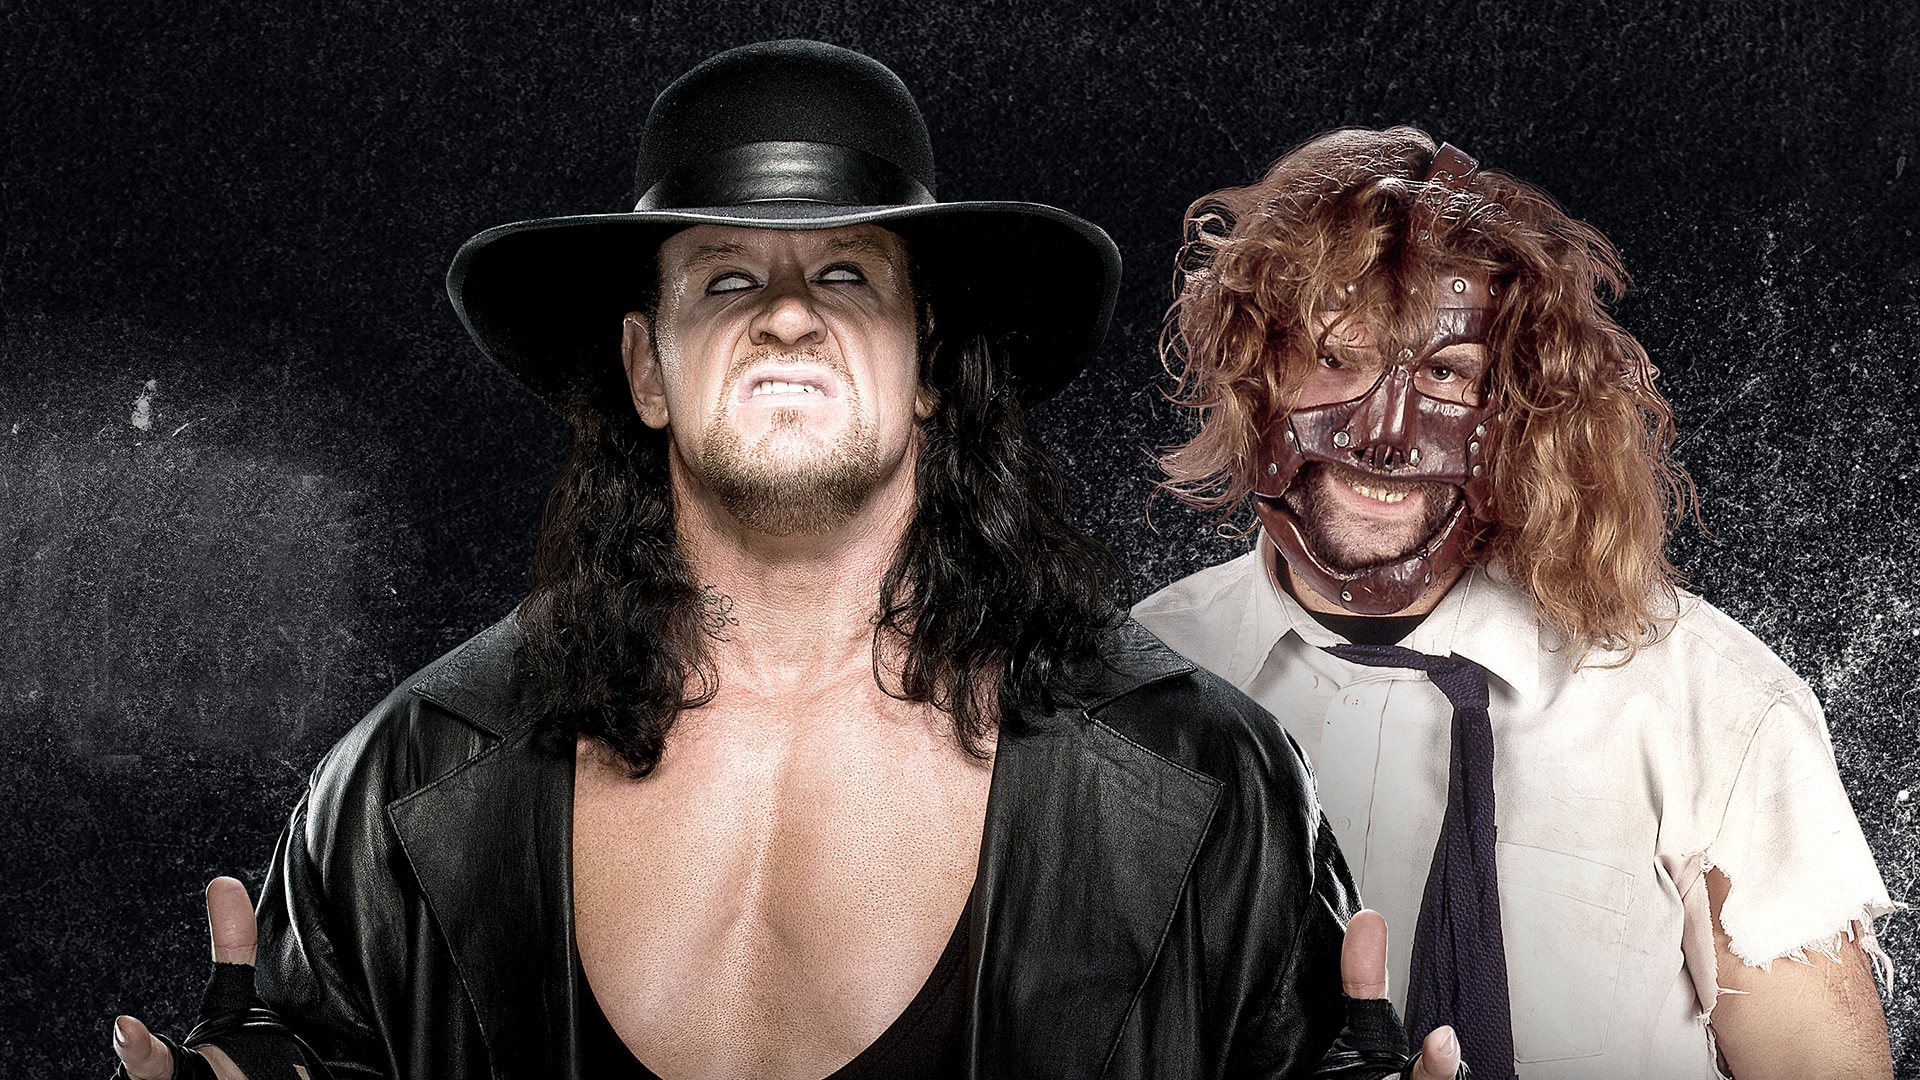 Undertaker and Mankind's Hell in a Cell Match